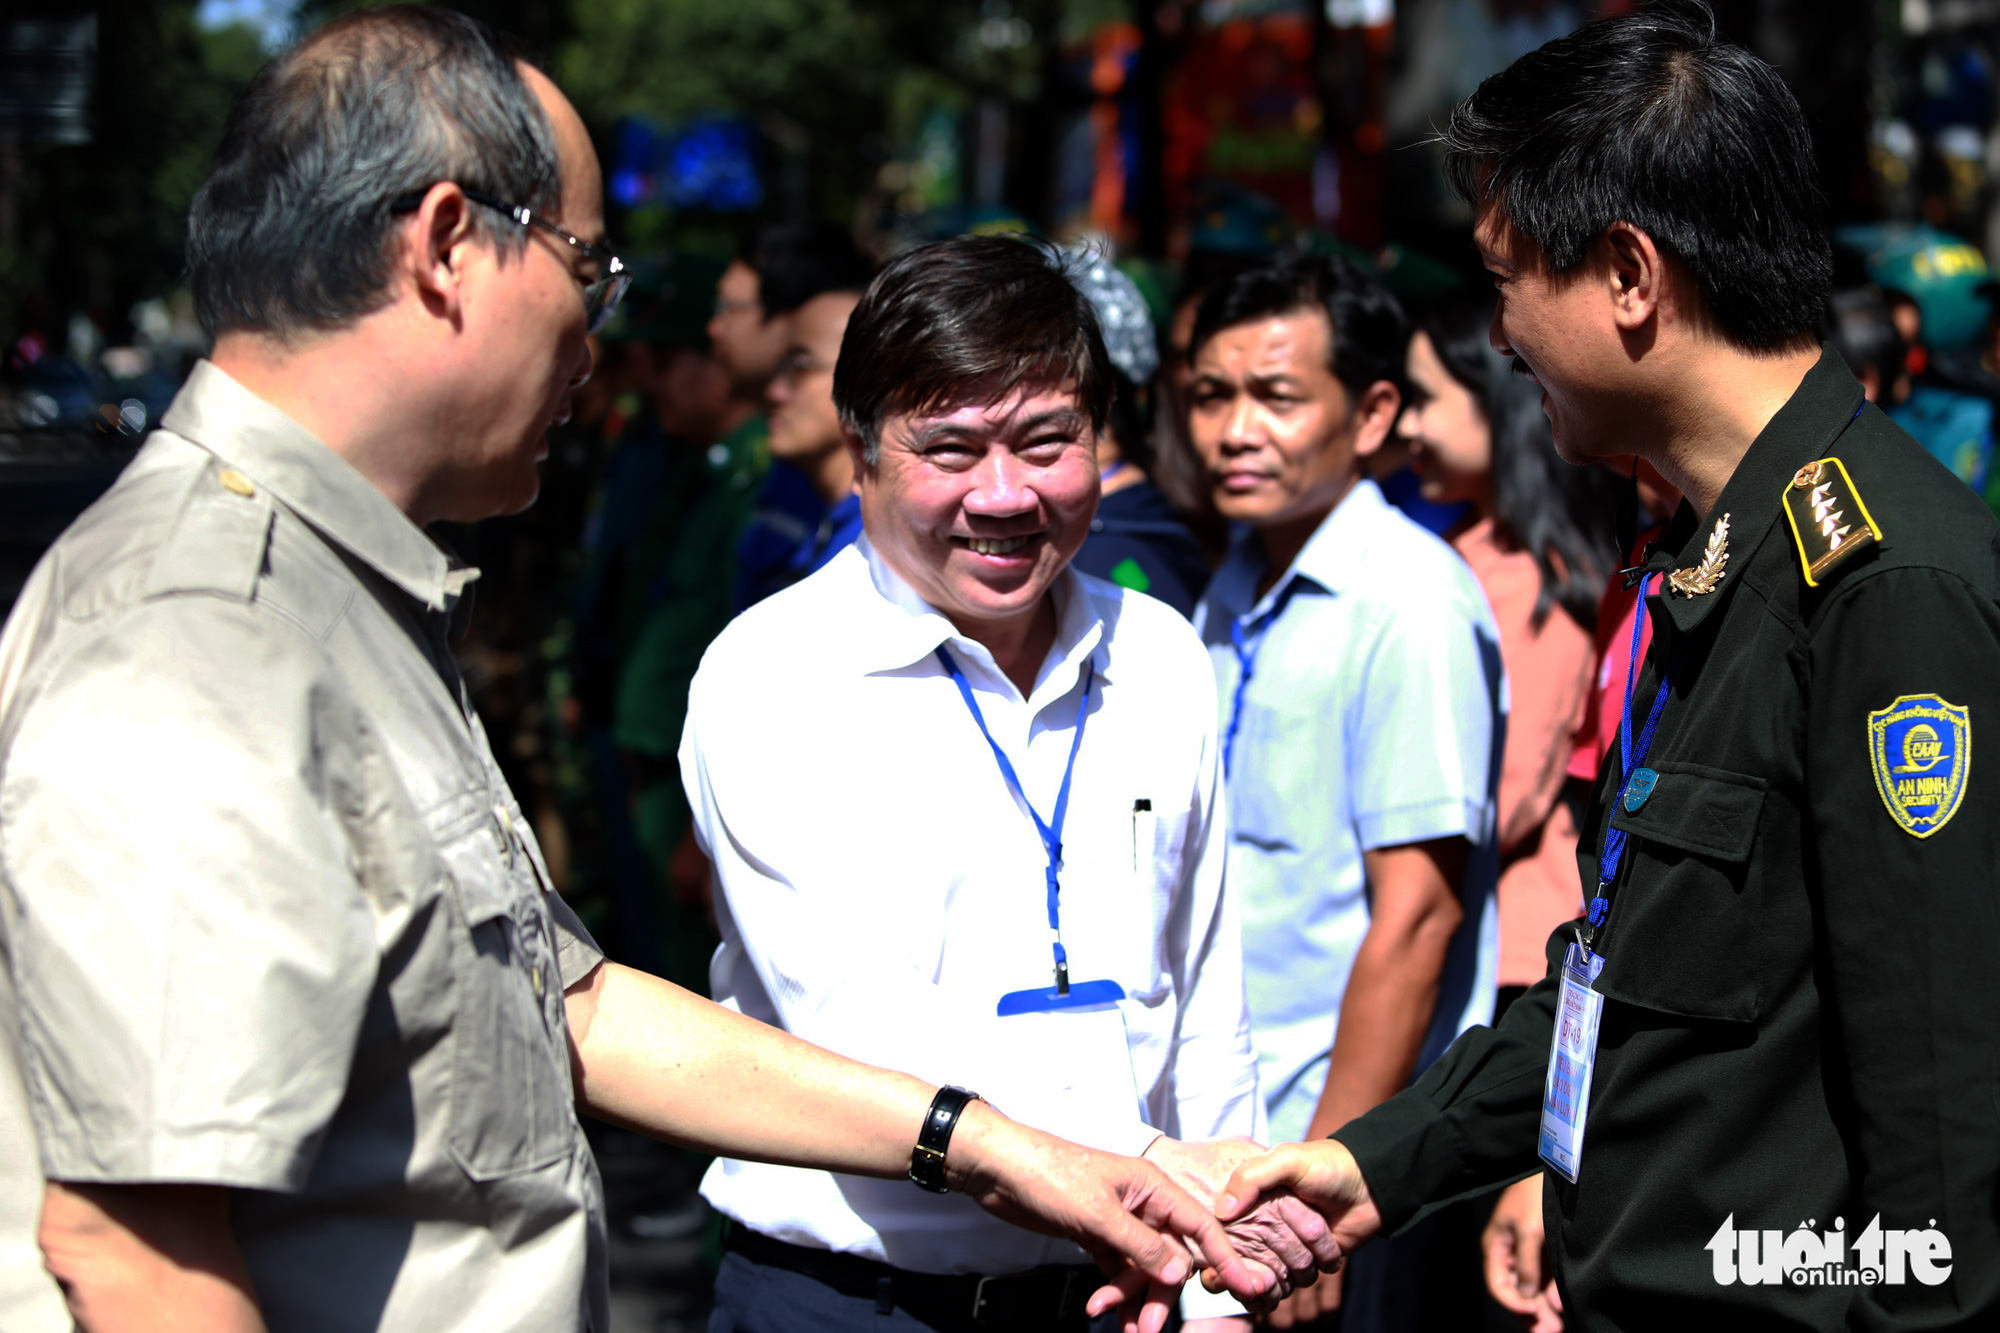 Chairman of the Ho Chi Minh City People's Committee Nguyen Thanh Phong thank the officers for taking part in the exercise.